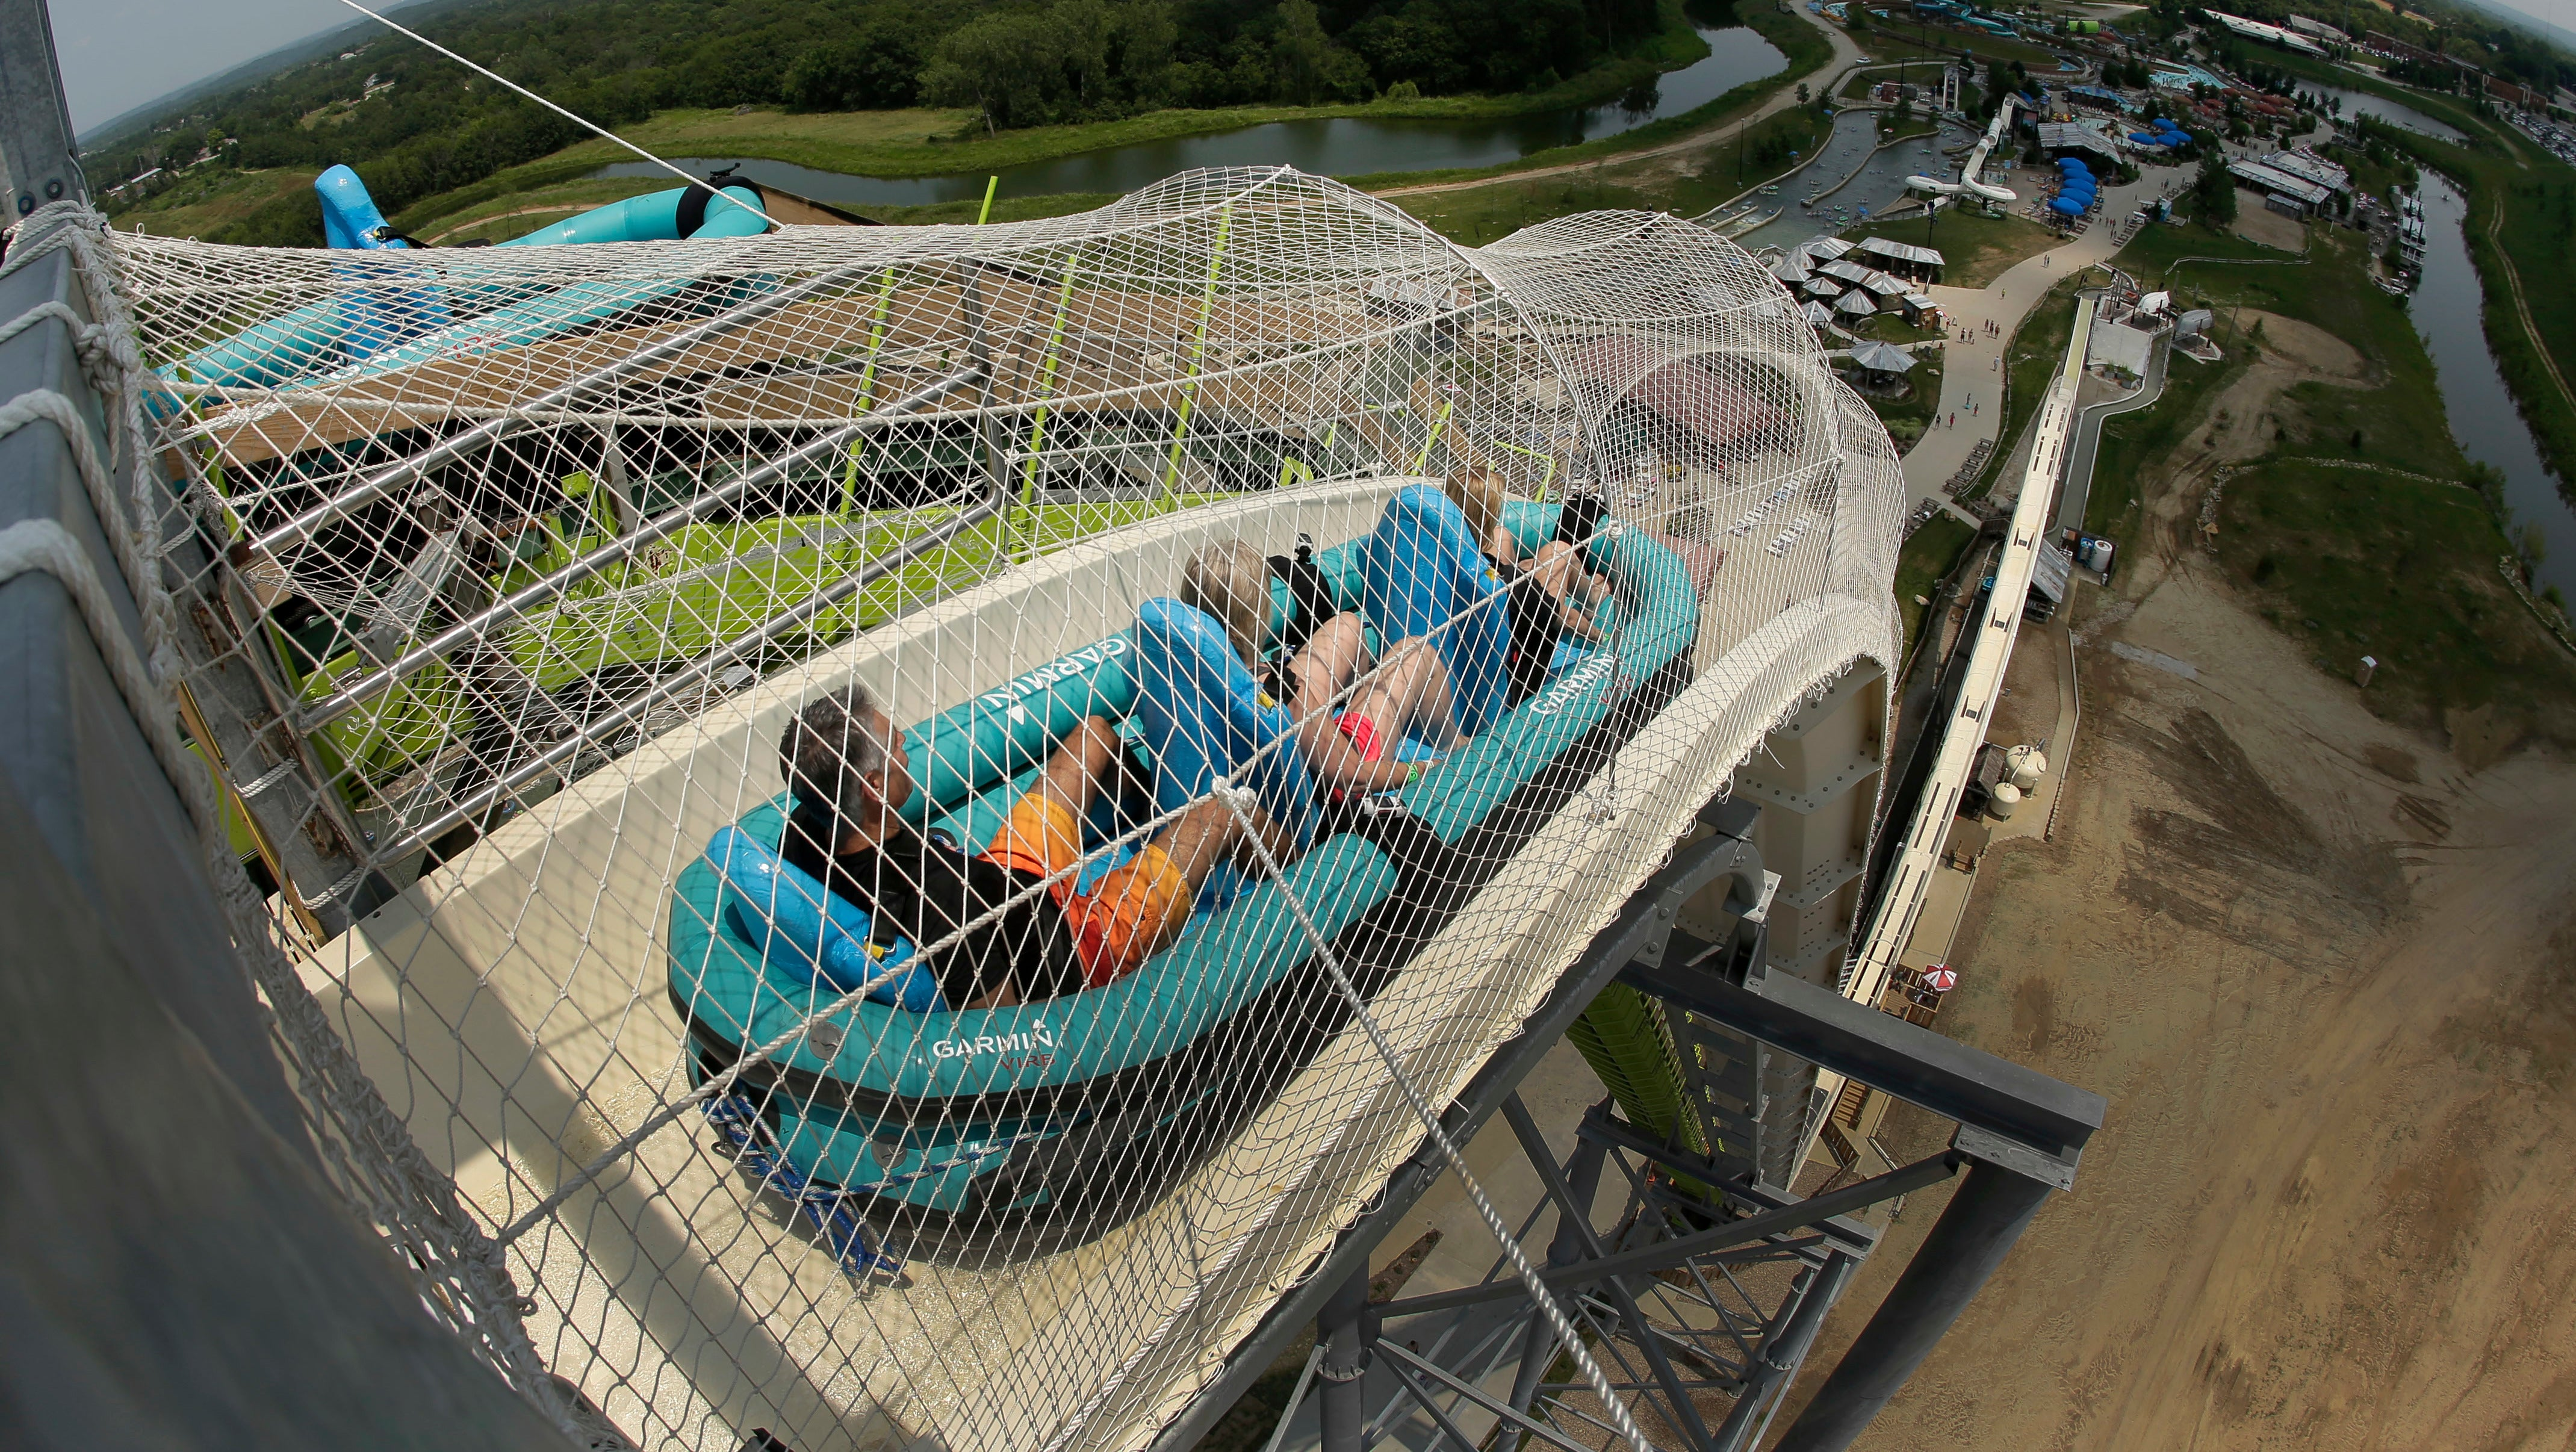 US Federal Agents Arrest Designer Of51-MetreWater Slide That Decapitated 10-Year-Old